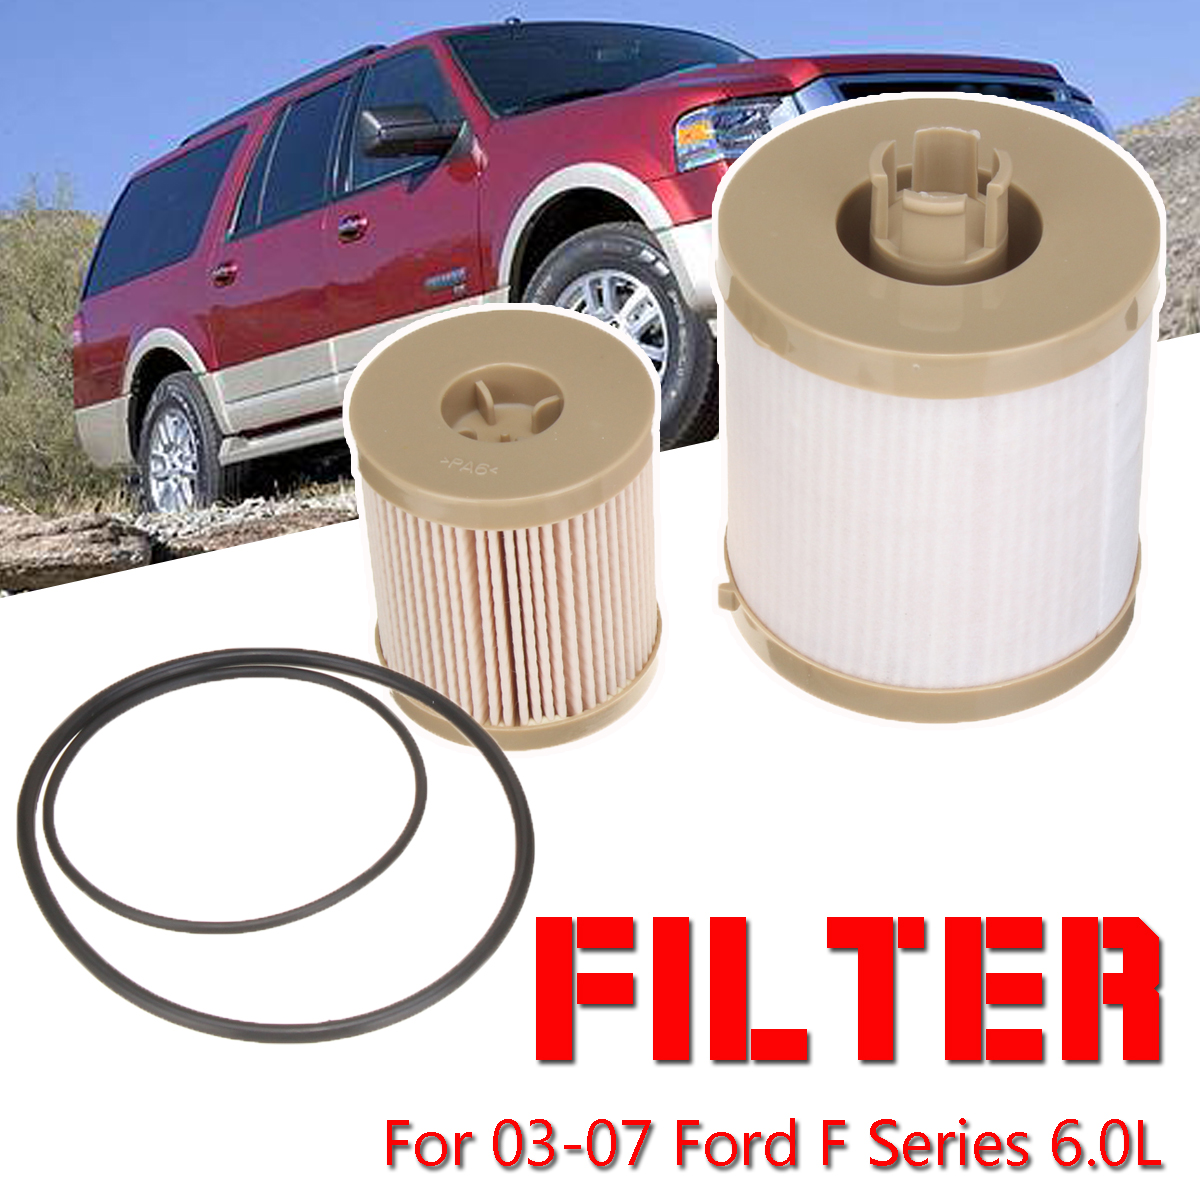 automobile oil filters petrol gas gasoline liquid fuel filters car oil filter replacement for ford 2003 [ 1200 x 1200 Pixel ]